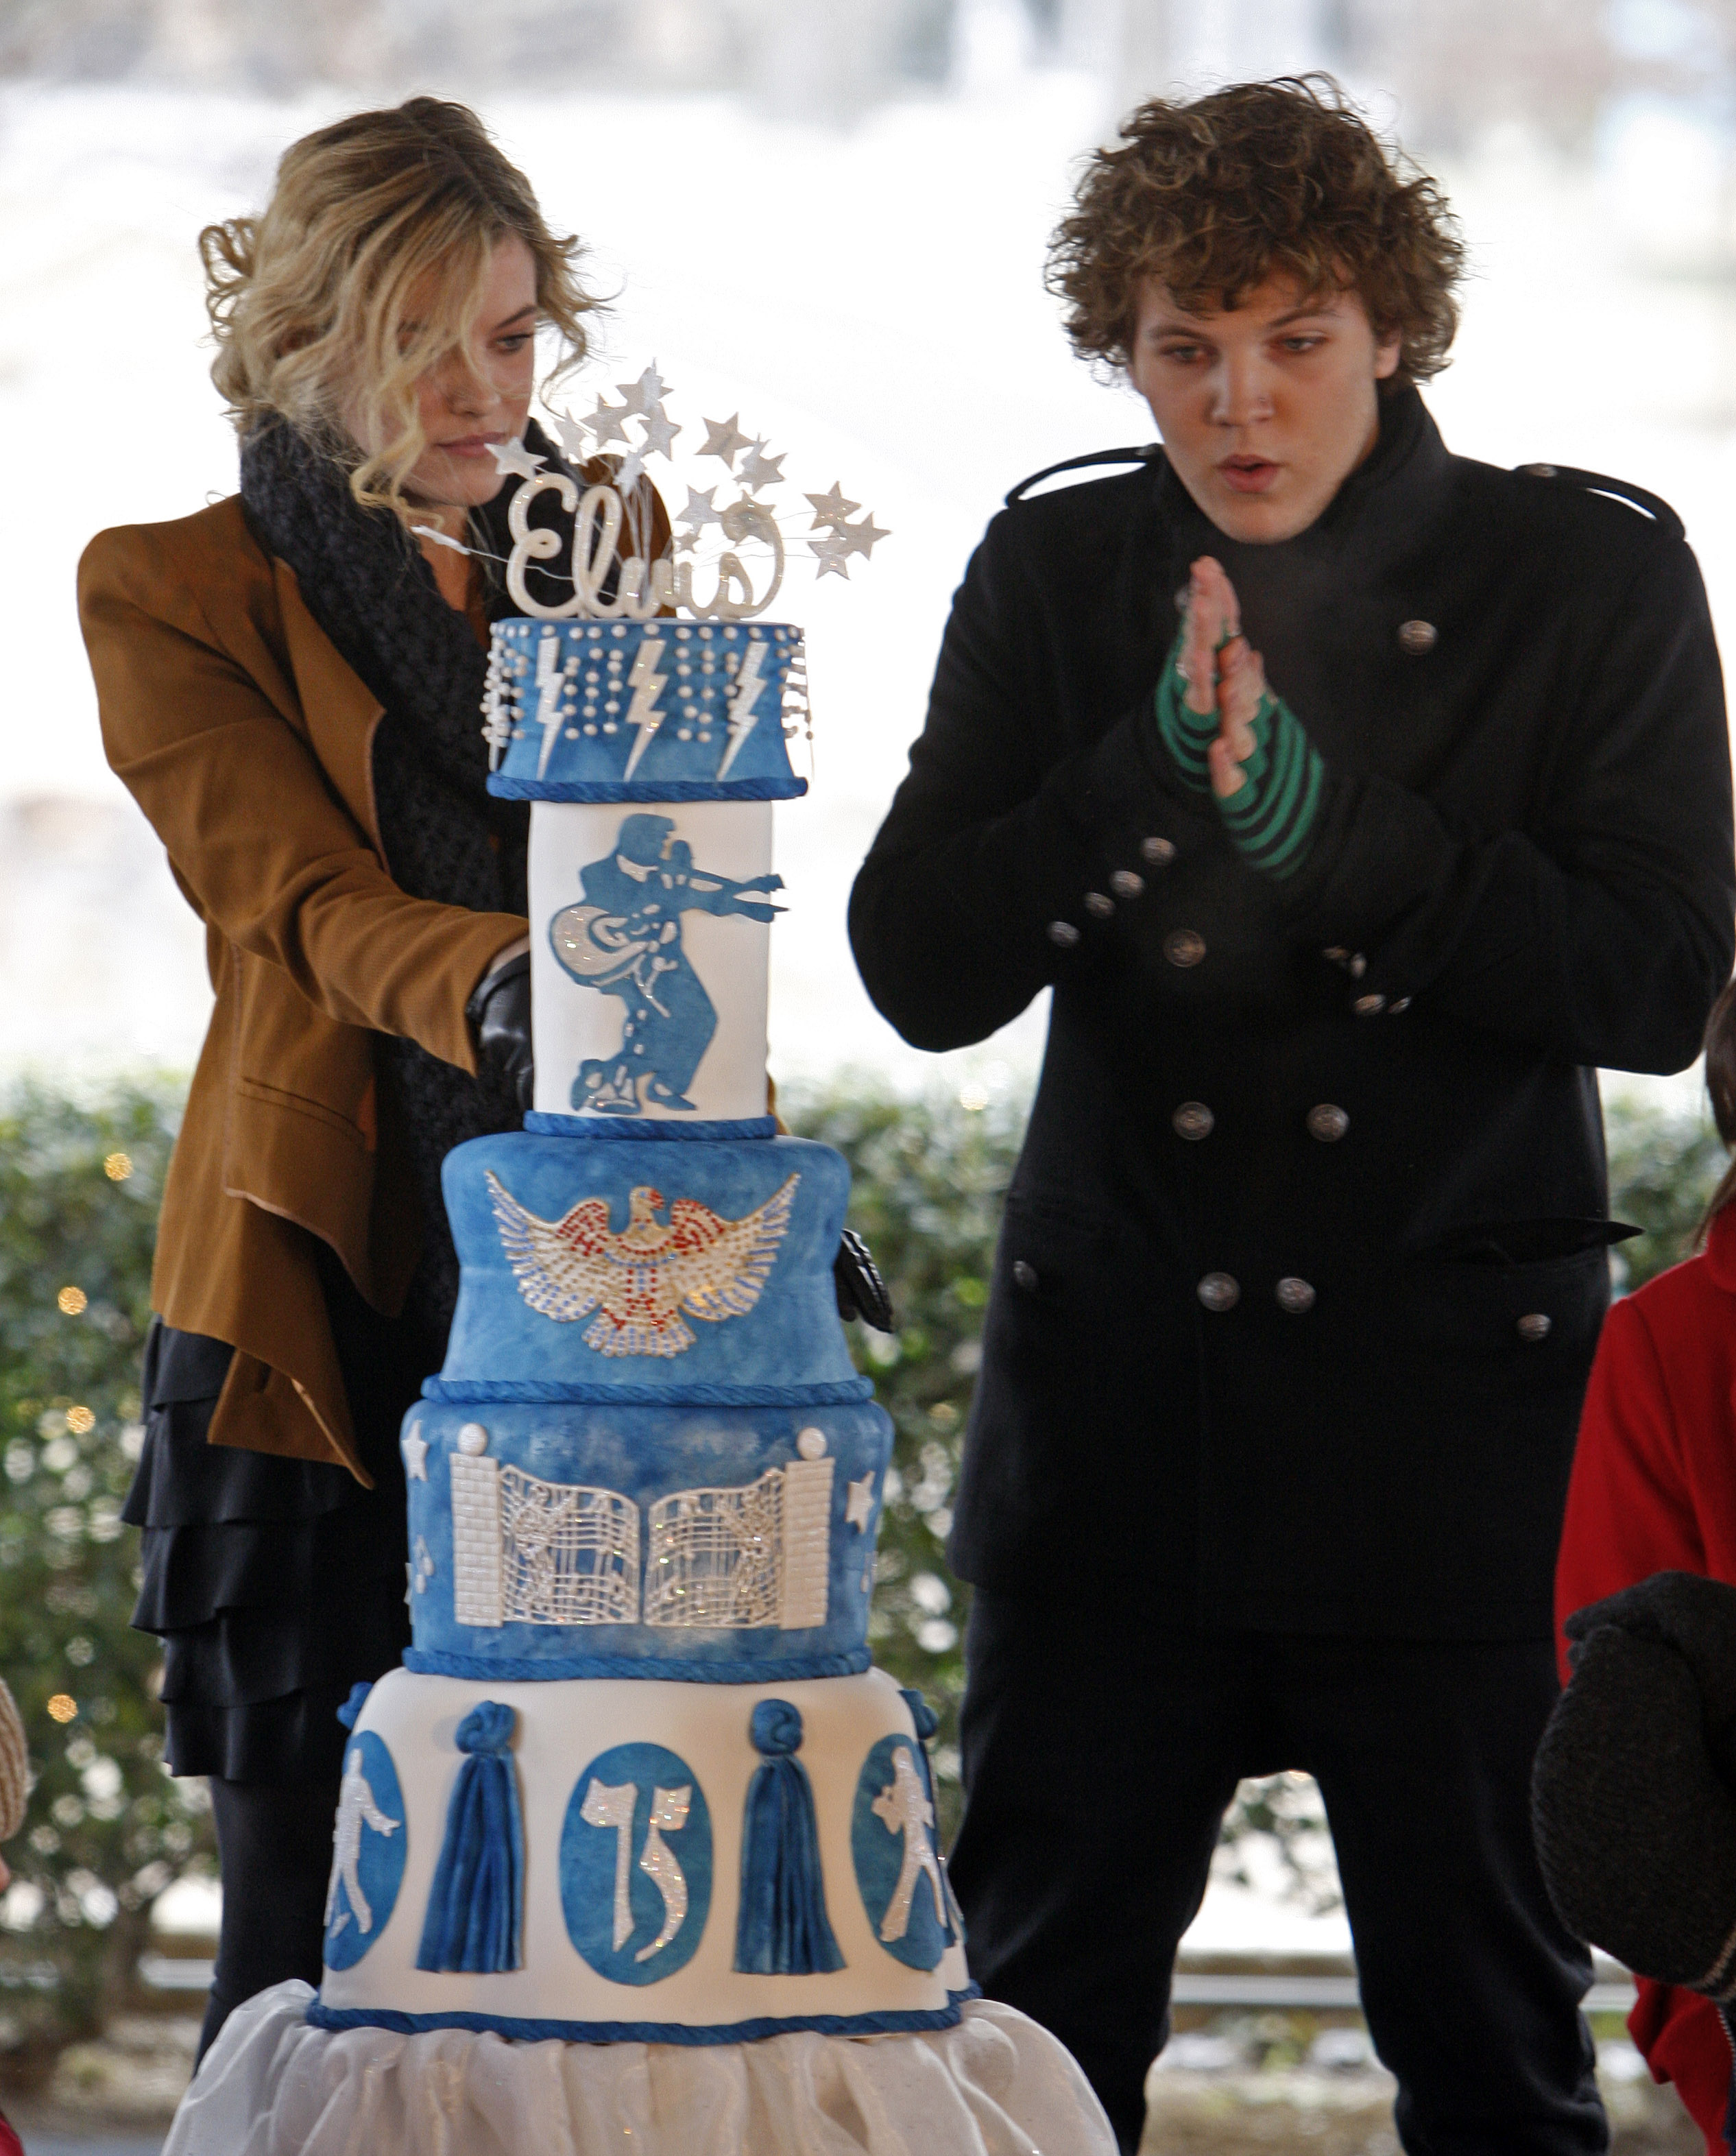 Riley Keough, 21, left, cuts the birthday cake as her brother, Benjamin, 18, right, warms his hands as they take part in a ceremony commemorating Elvis Presley's 75th birthday on Friday, Jan. 8, 2010 in Memphis, Tenn. Both are the children of Lisa Marie Presley and the grandchildren of Elvis Presley.